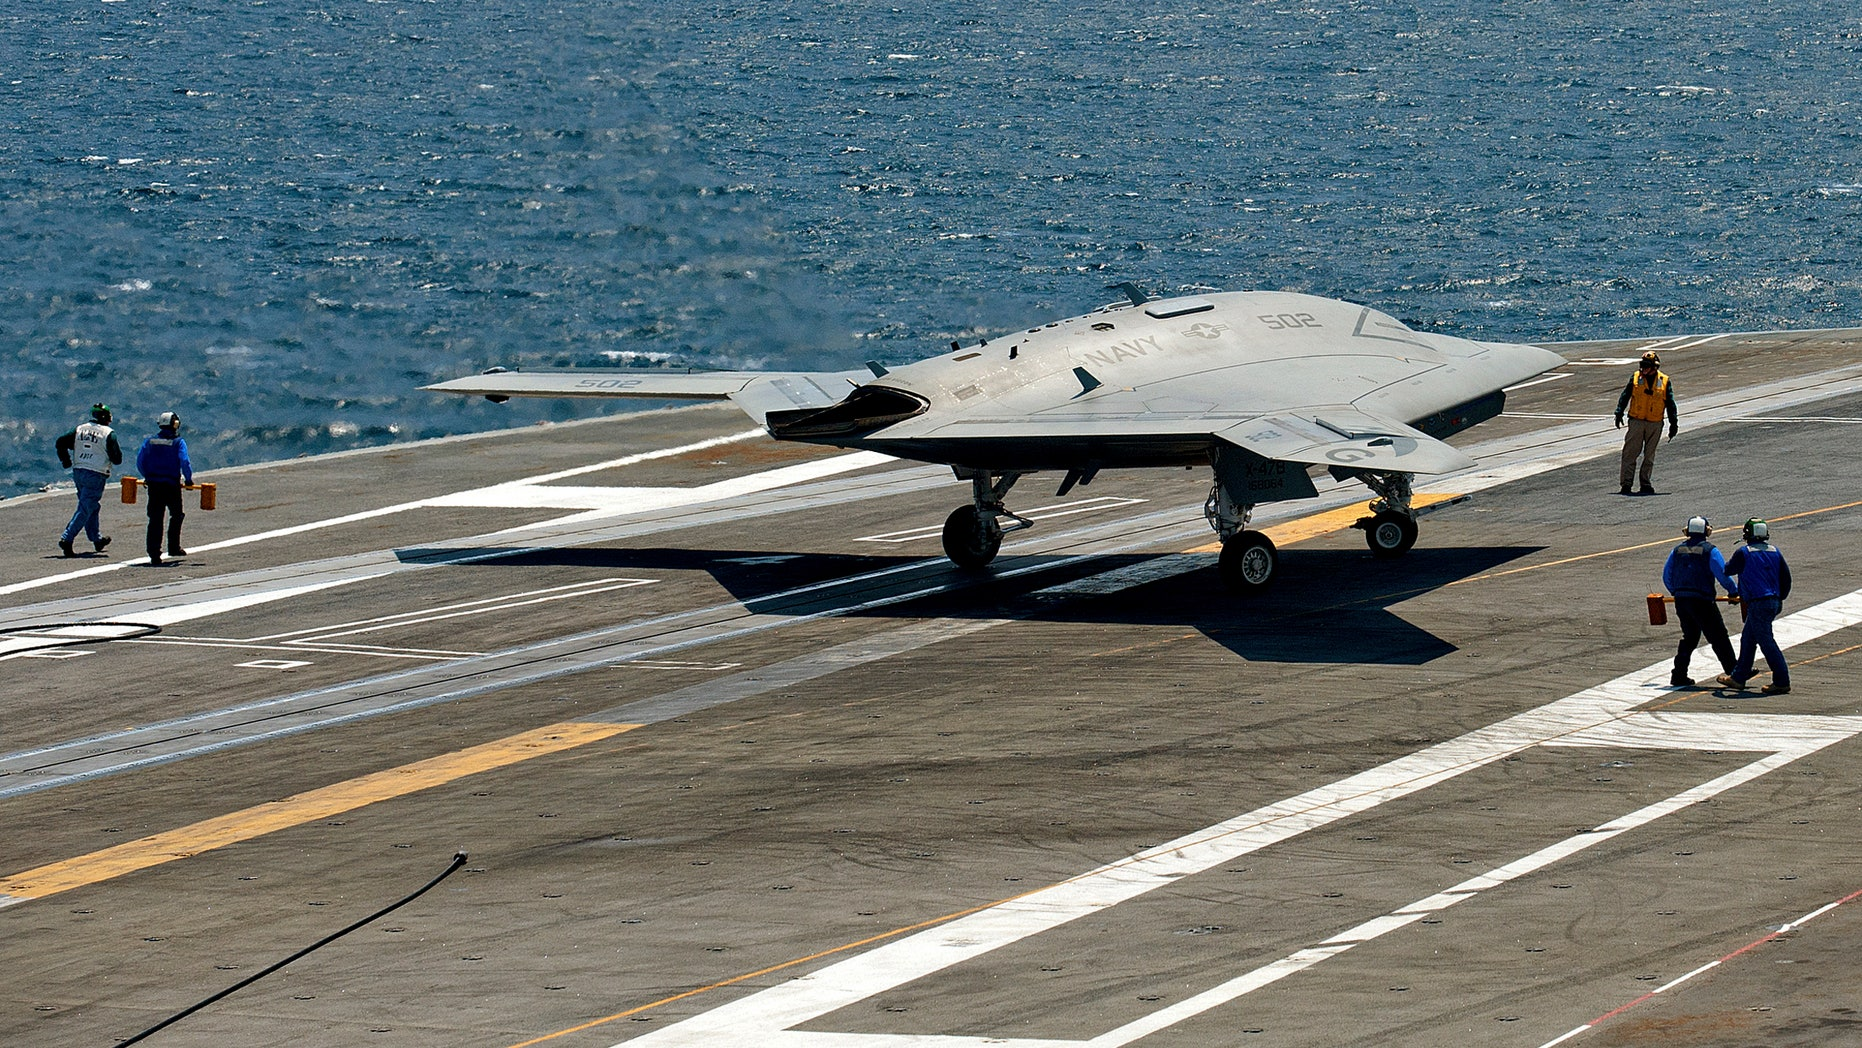 July 10, 2013: An X-47B pilot-less drone combat aircraft comes to a stop after landing on the deck of the USS George H.W. Bush aircraft carrier in the Atlantic Ocean off the coast of Norfolk, Virginia .